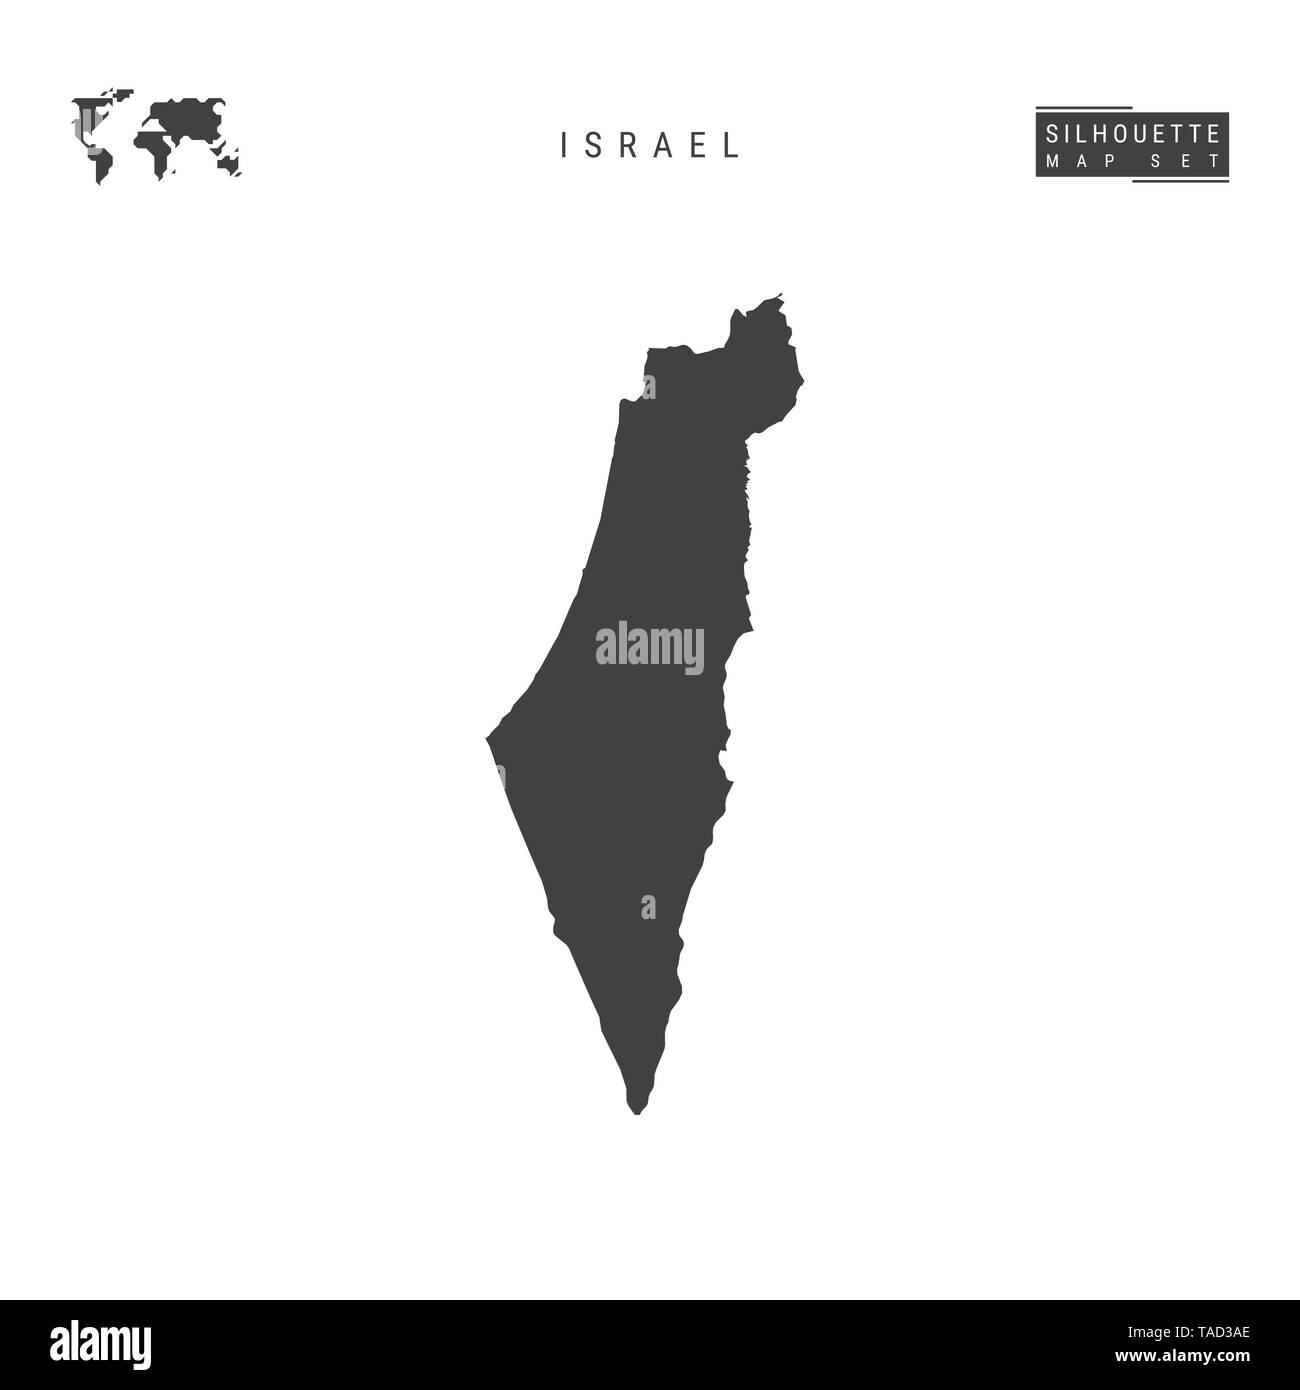 Picture of: Israel Blank Map Isolated On White Background High Detailed Black Silhouette Map Of Israel Stock Photo Alamy